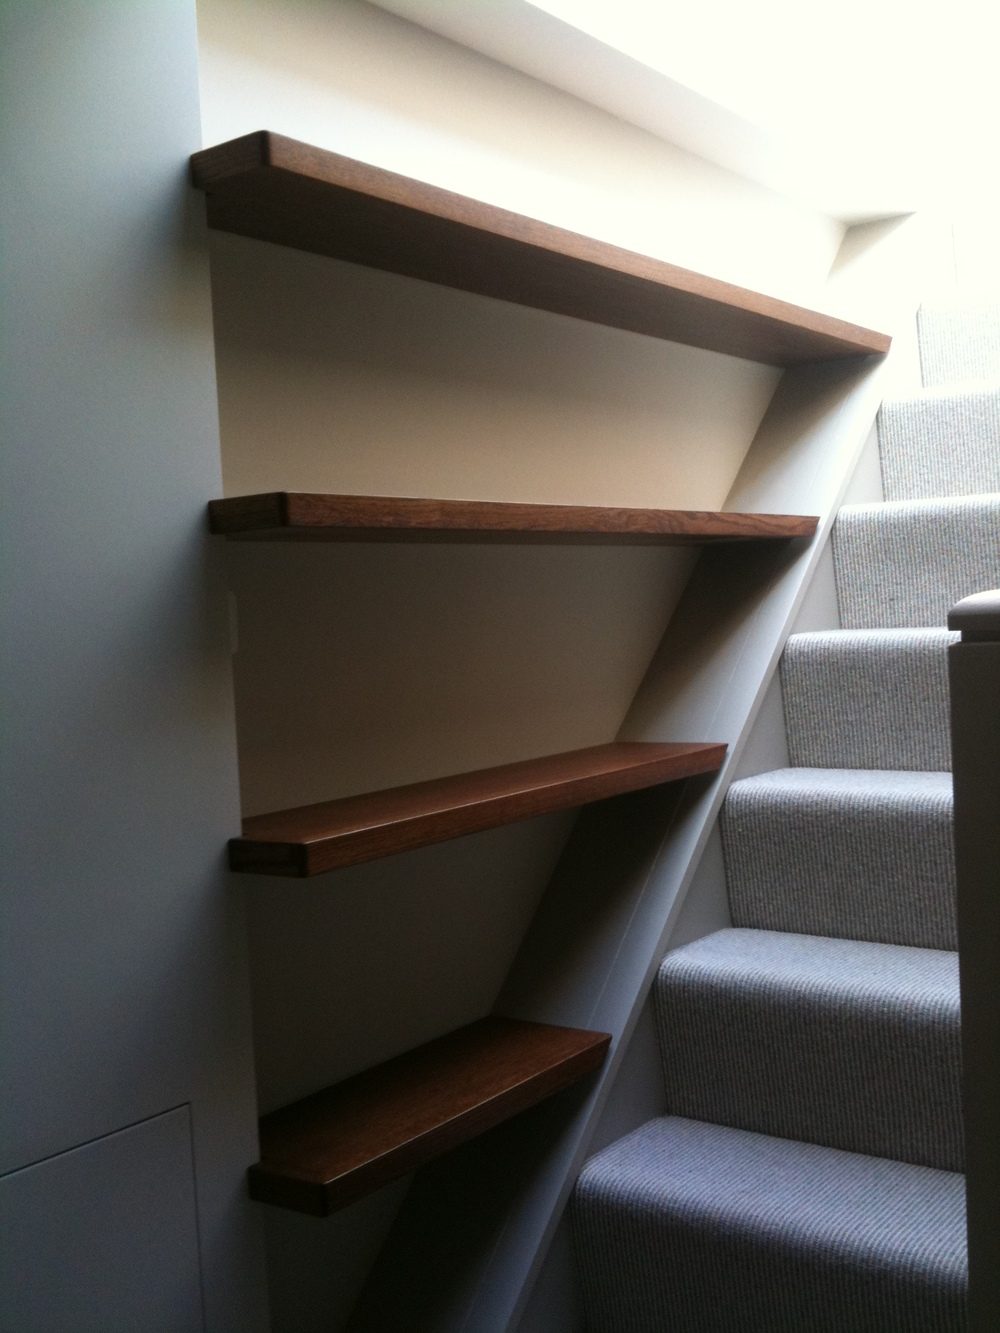 Stained Oak floating shelves.